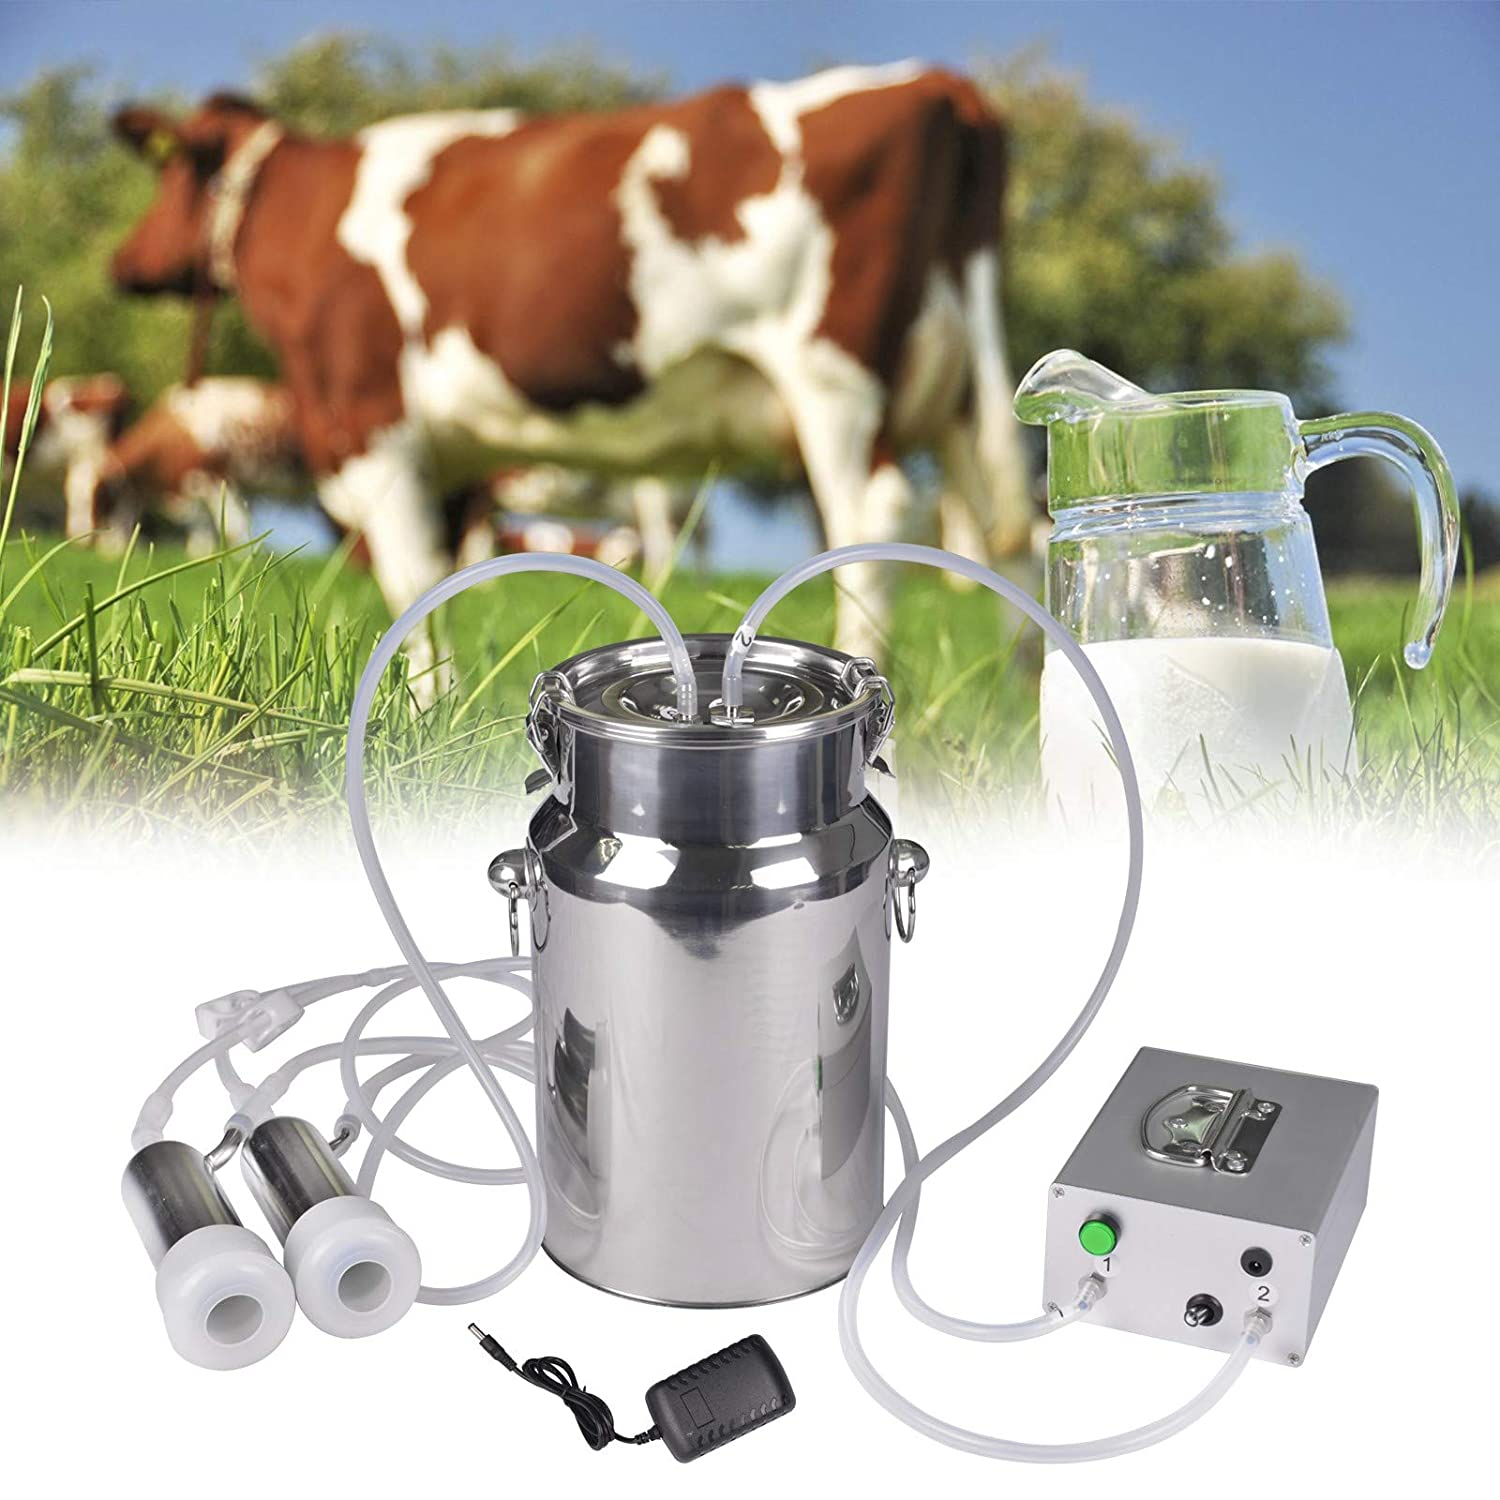 Cow Milking Machine Pump Milker Machine Auto-Stop Device for Cow Livestock Household Farm Stainless Steel Food Grade Bucket Milking Device 14L